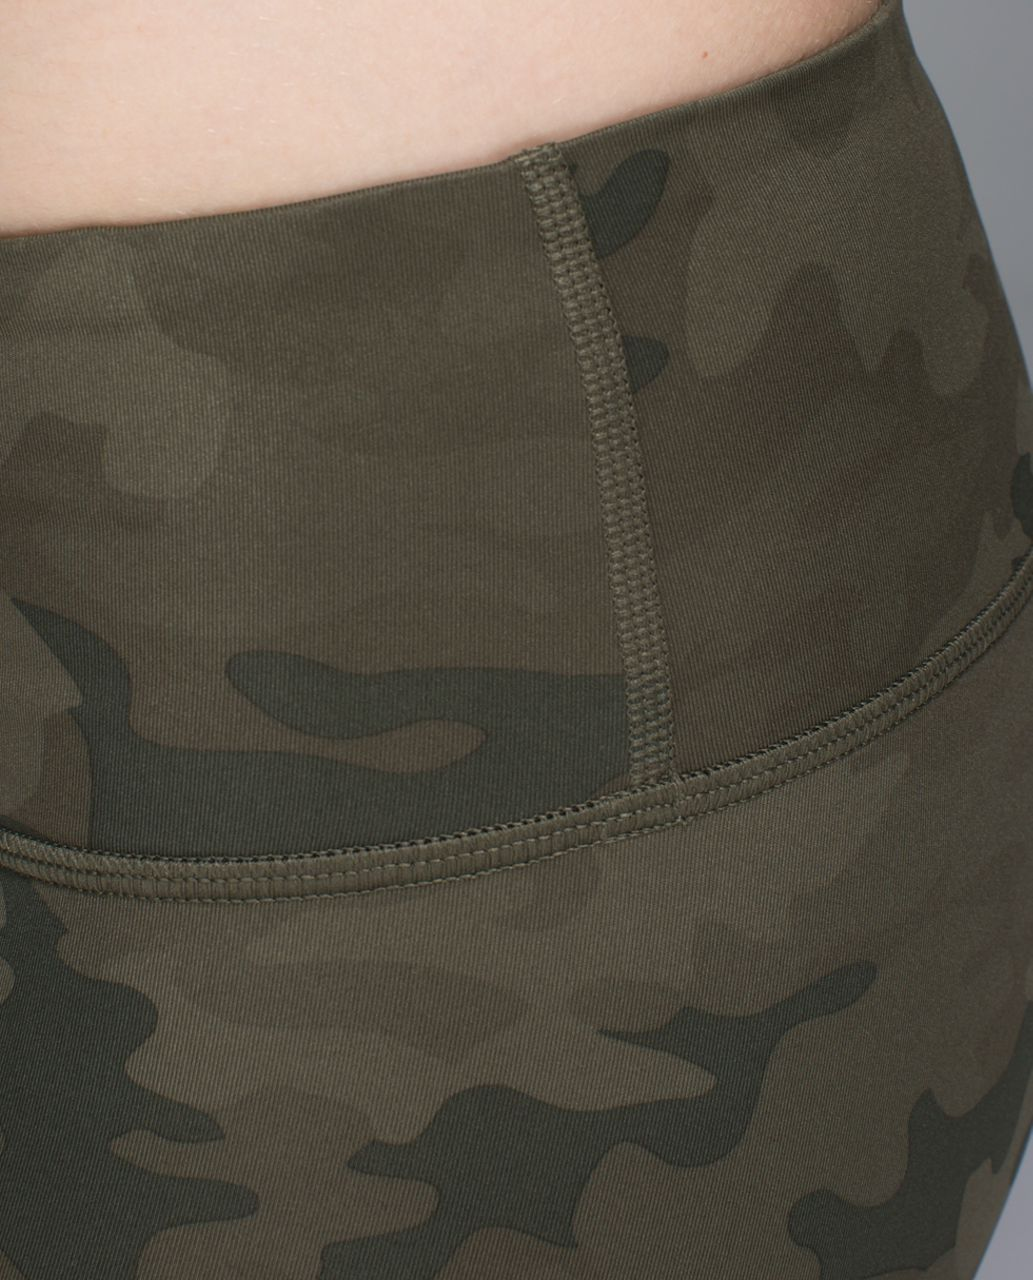 Lululemon Wunder Under Pant *Full-On Luxtreme - Savasana Camo 20cm Fatigue Green